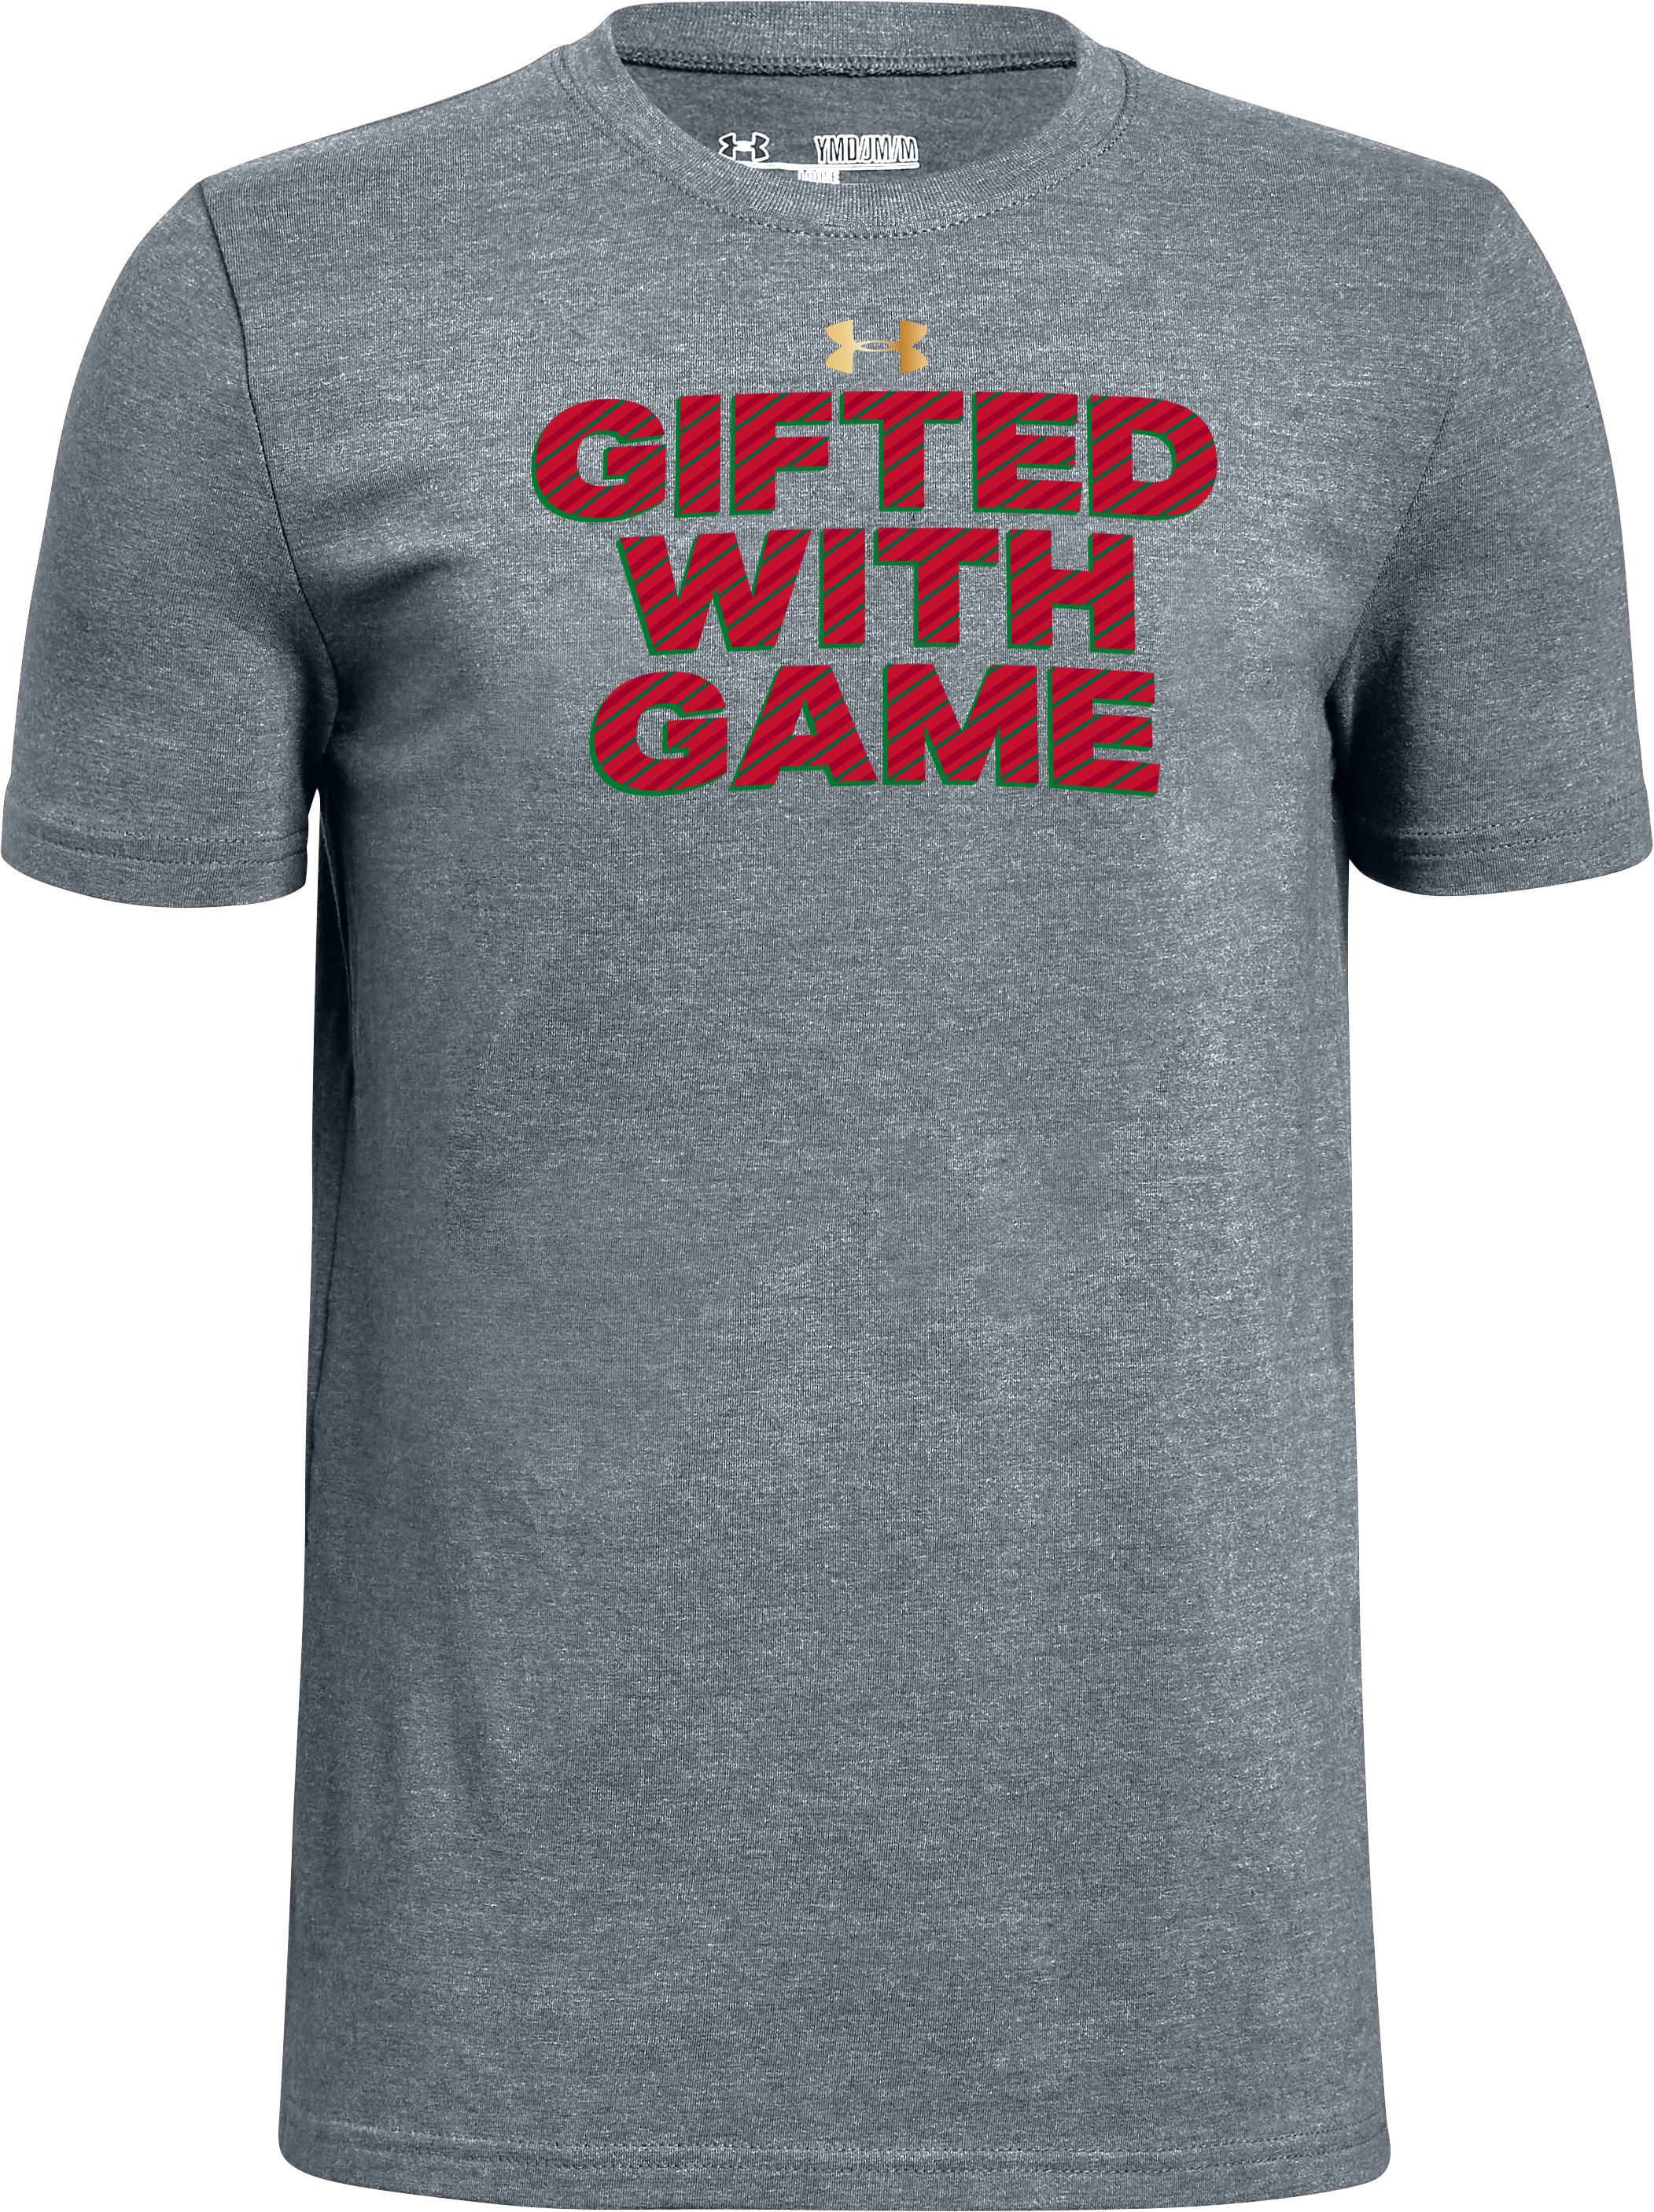 Boys' UA Gifted With Game Graphic T-Shirt, STEEL LIGHT HEATHER, zoomed